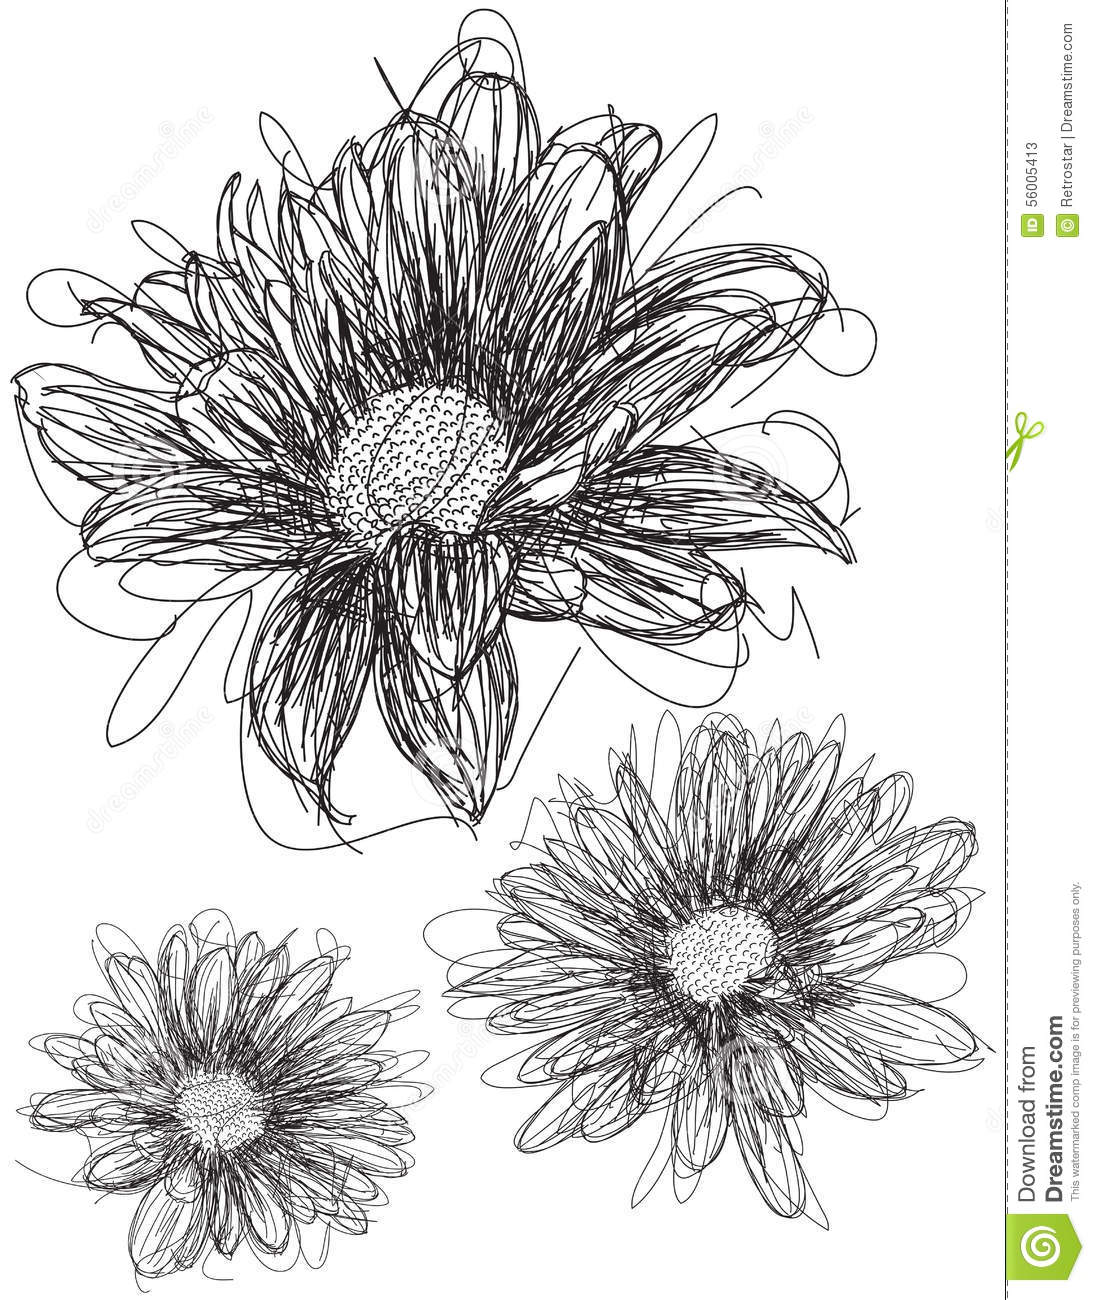 Daisy Flower Line Drawing : Daisy sketches stock vector illustration of flower